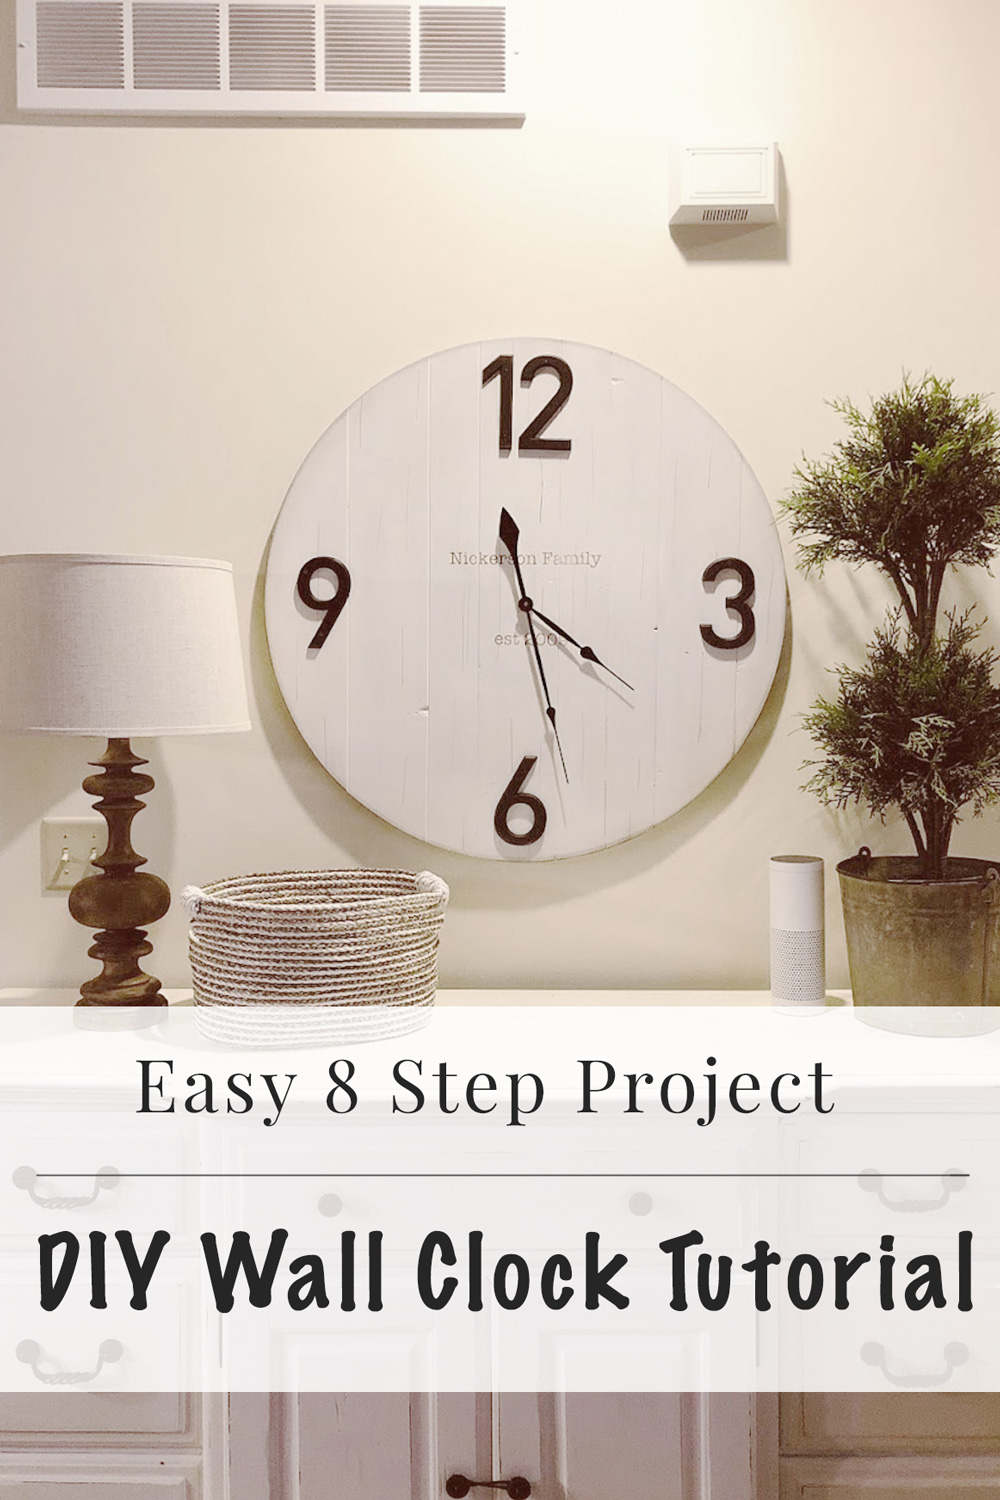 How to Make a DIY Wall Clock in 8 Easy Steps